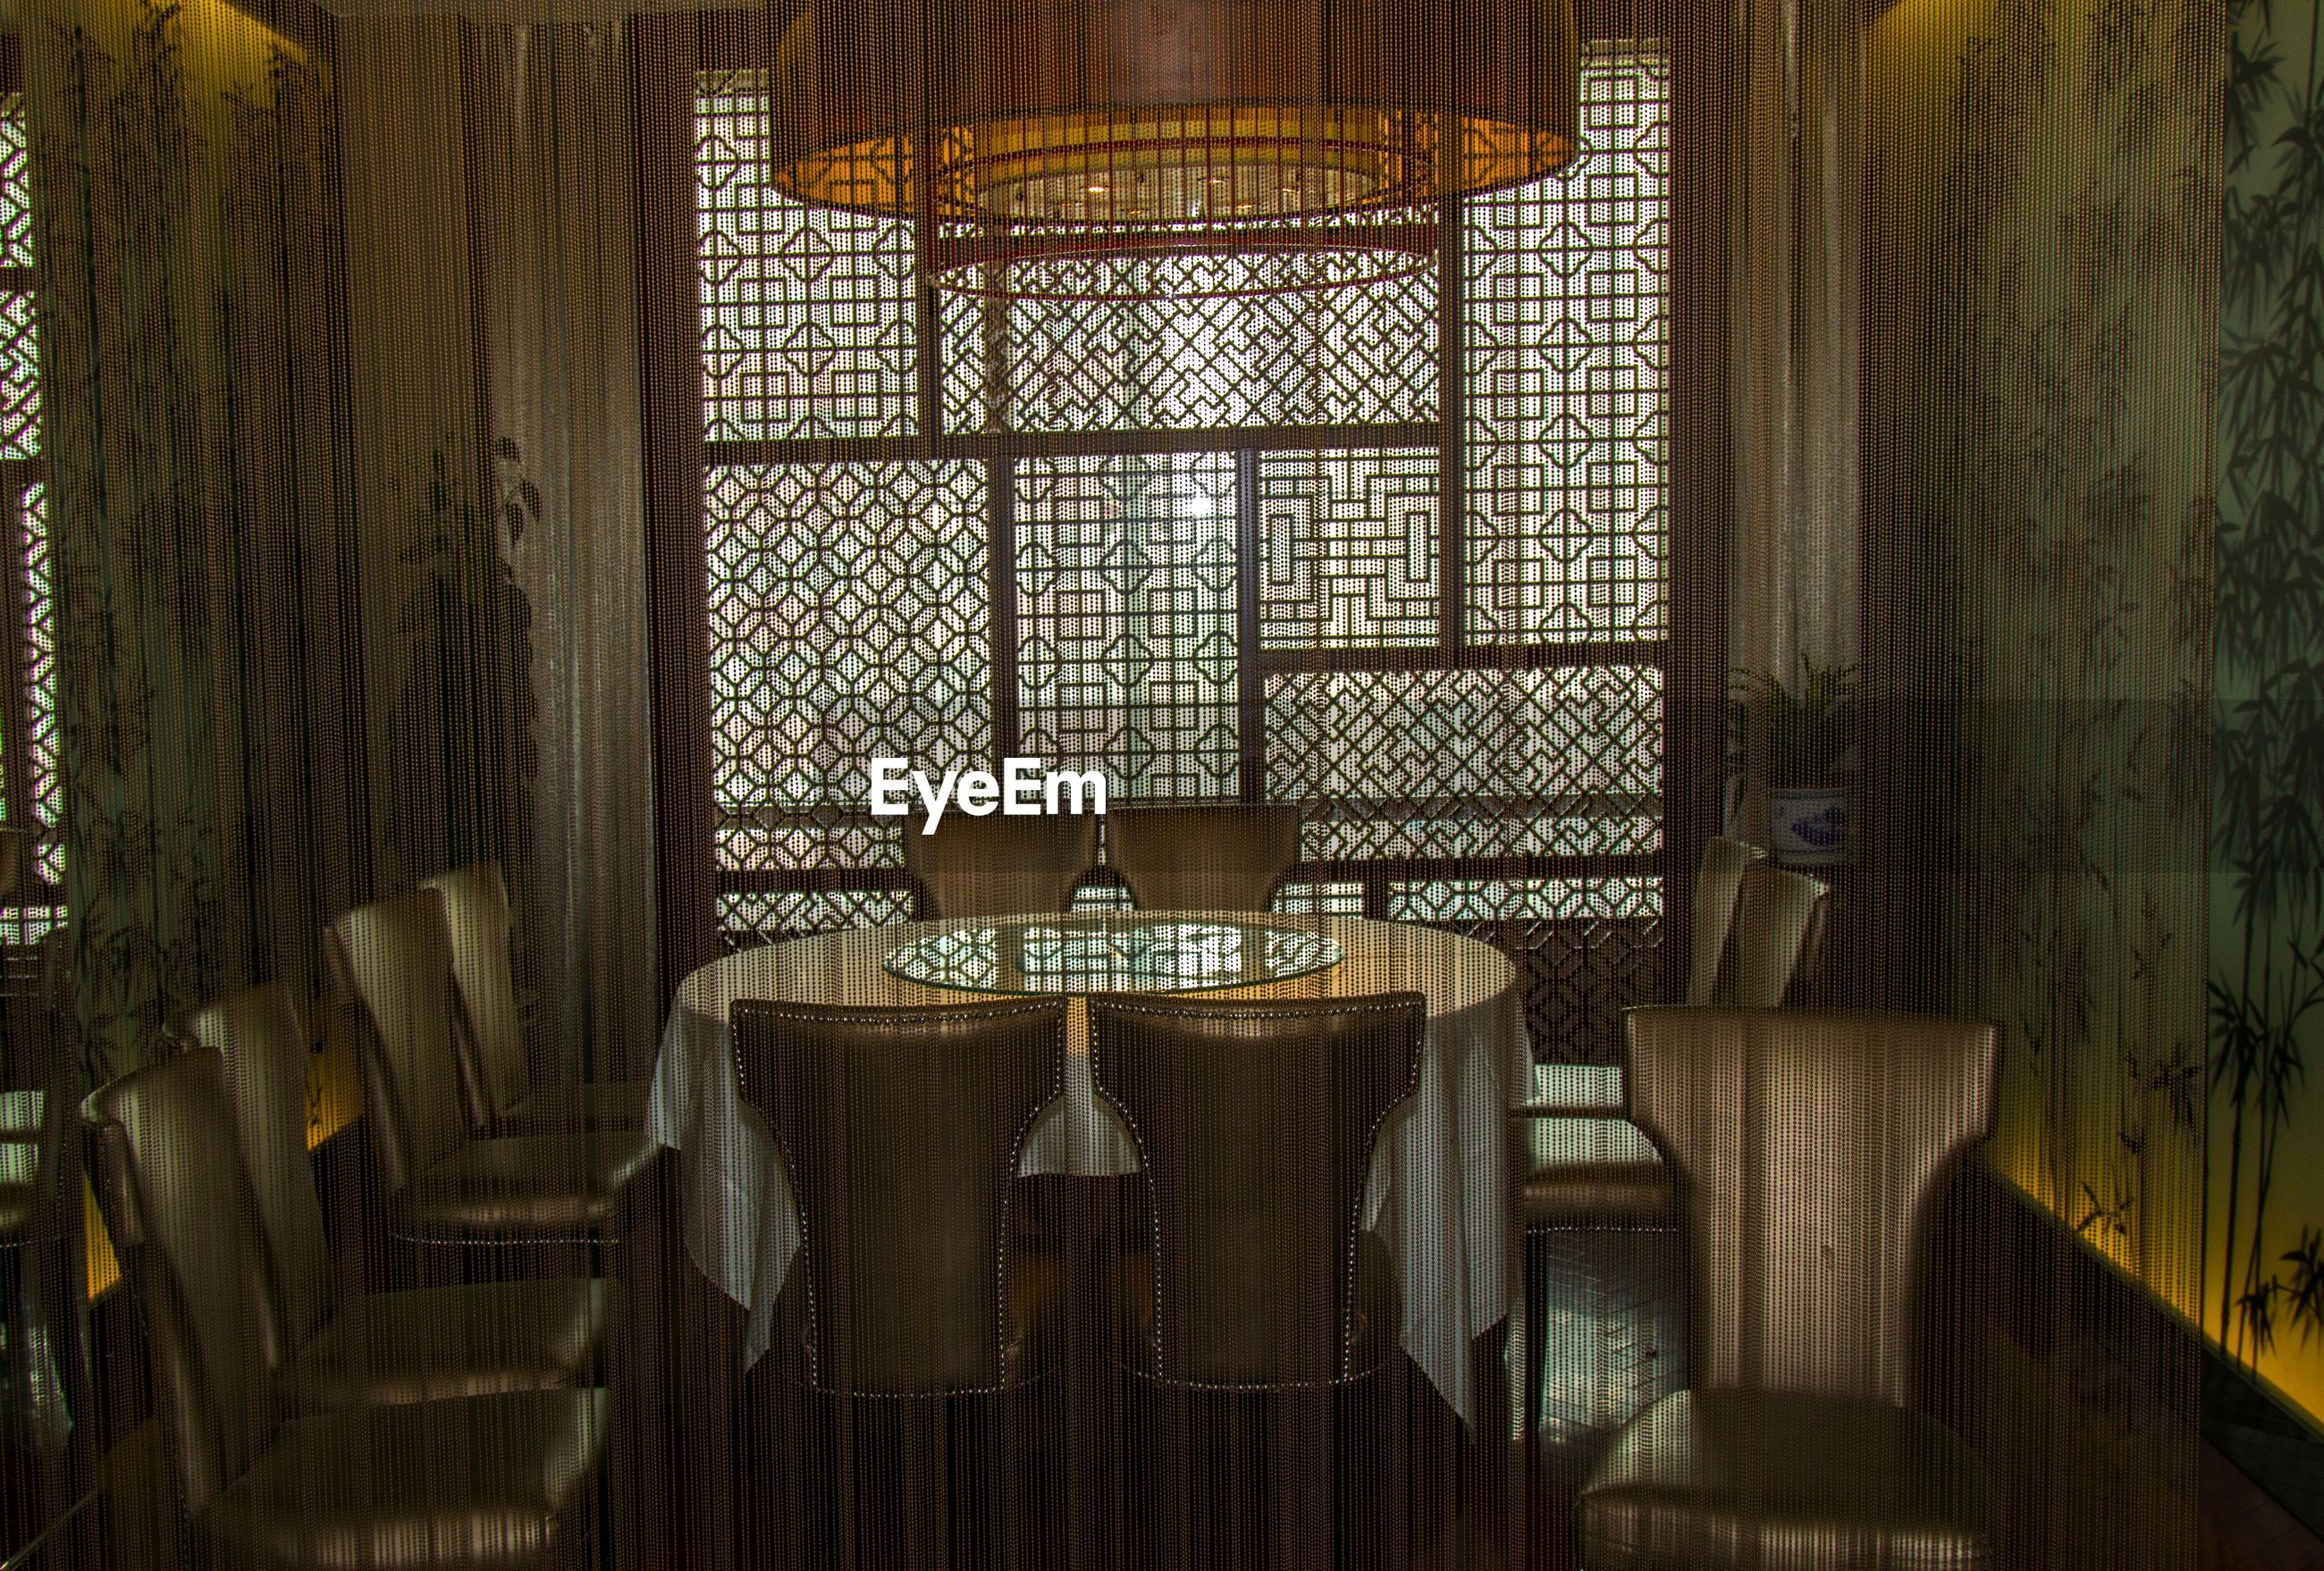 Empty table and chair in yi he spring restaurant